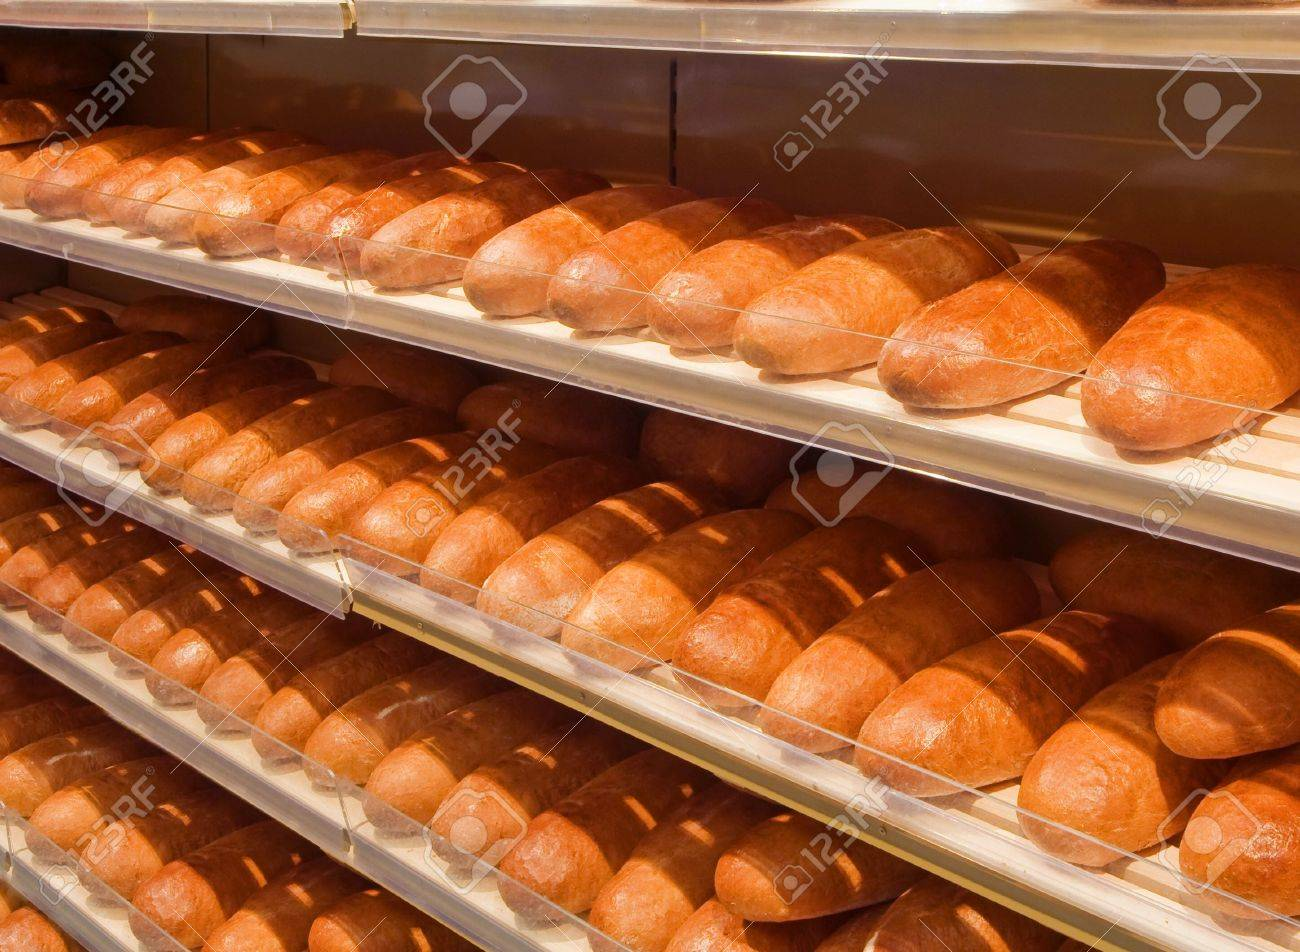 Loaves of bread on shelves in a store Stock Photo - 5434645